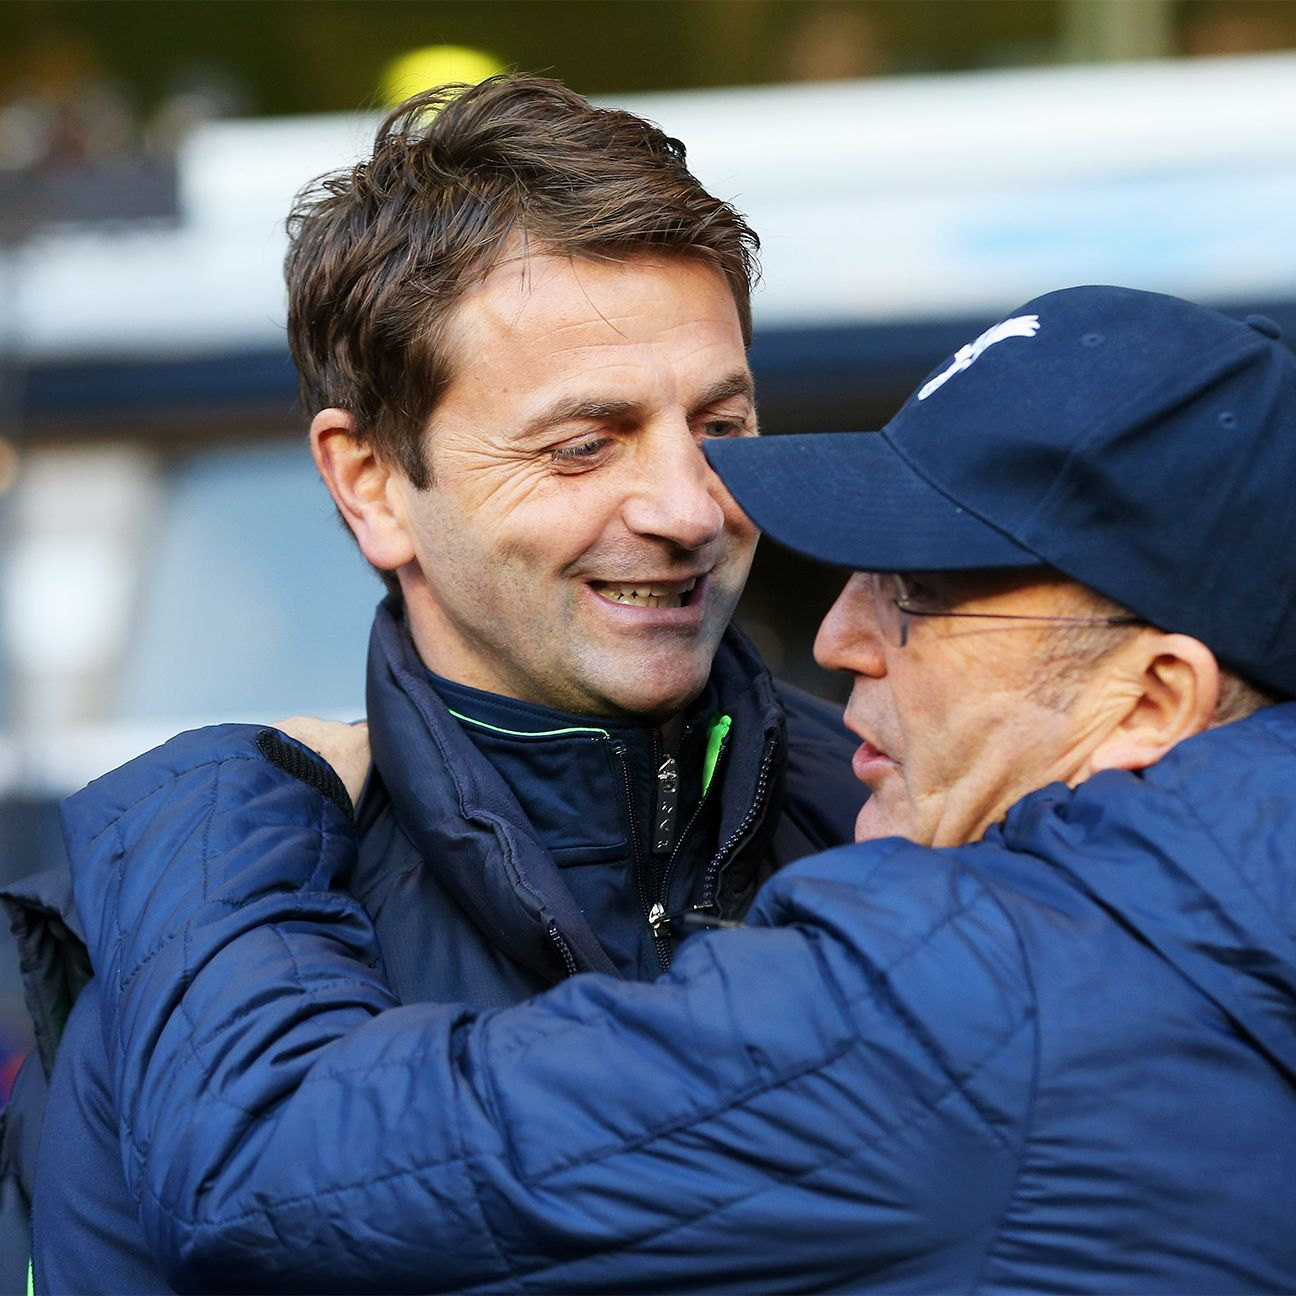 Aston Villa fans hope that Tim Sherwood, left, can replicate the success enjoyed thus far by Tony Pulis, right, at West Brom.